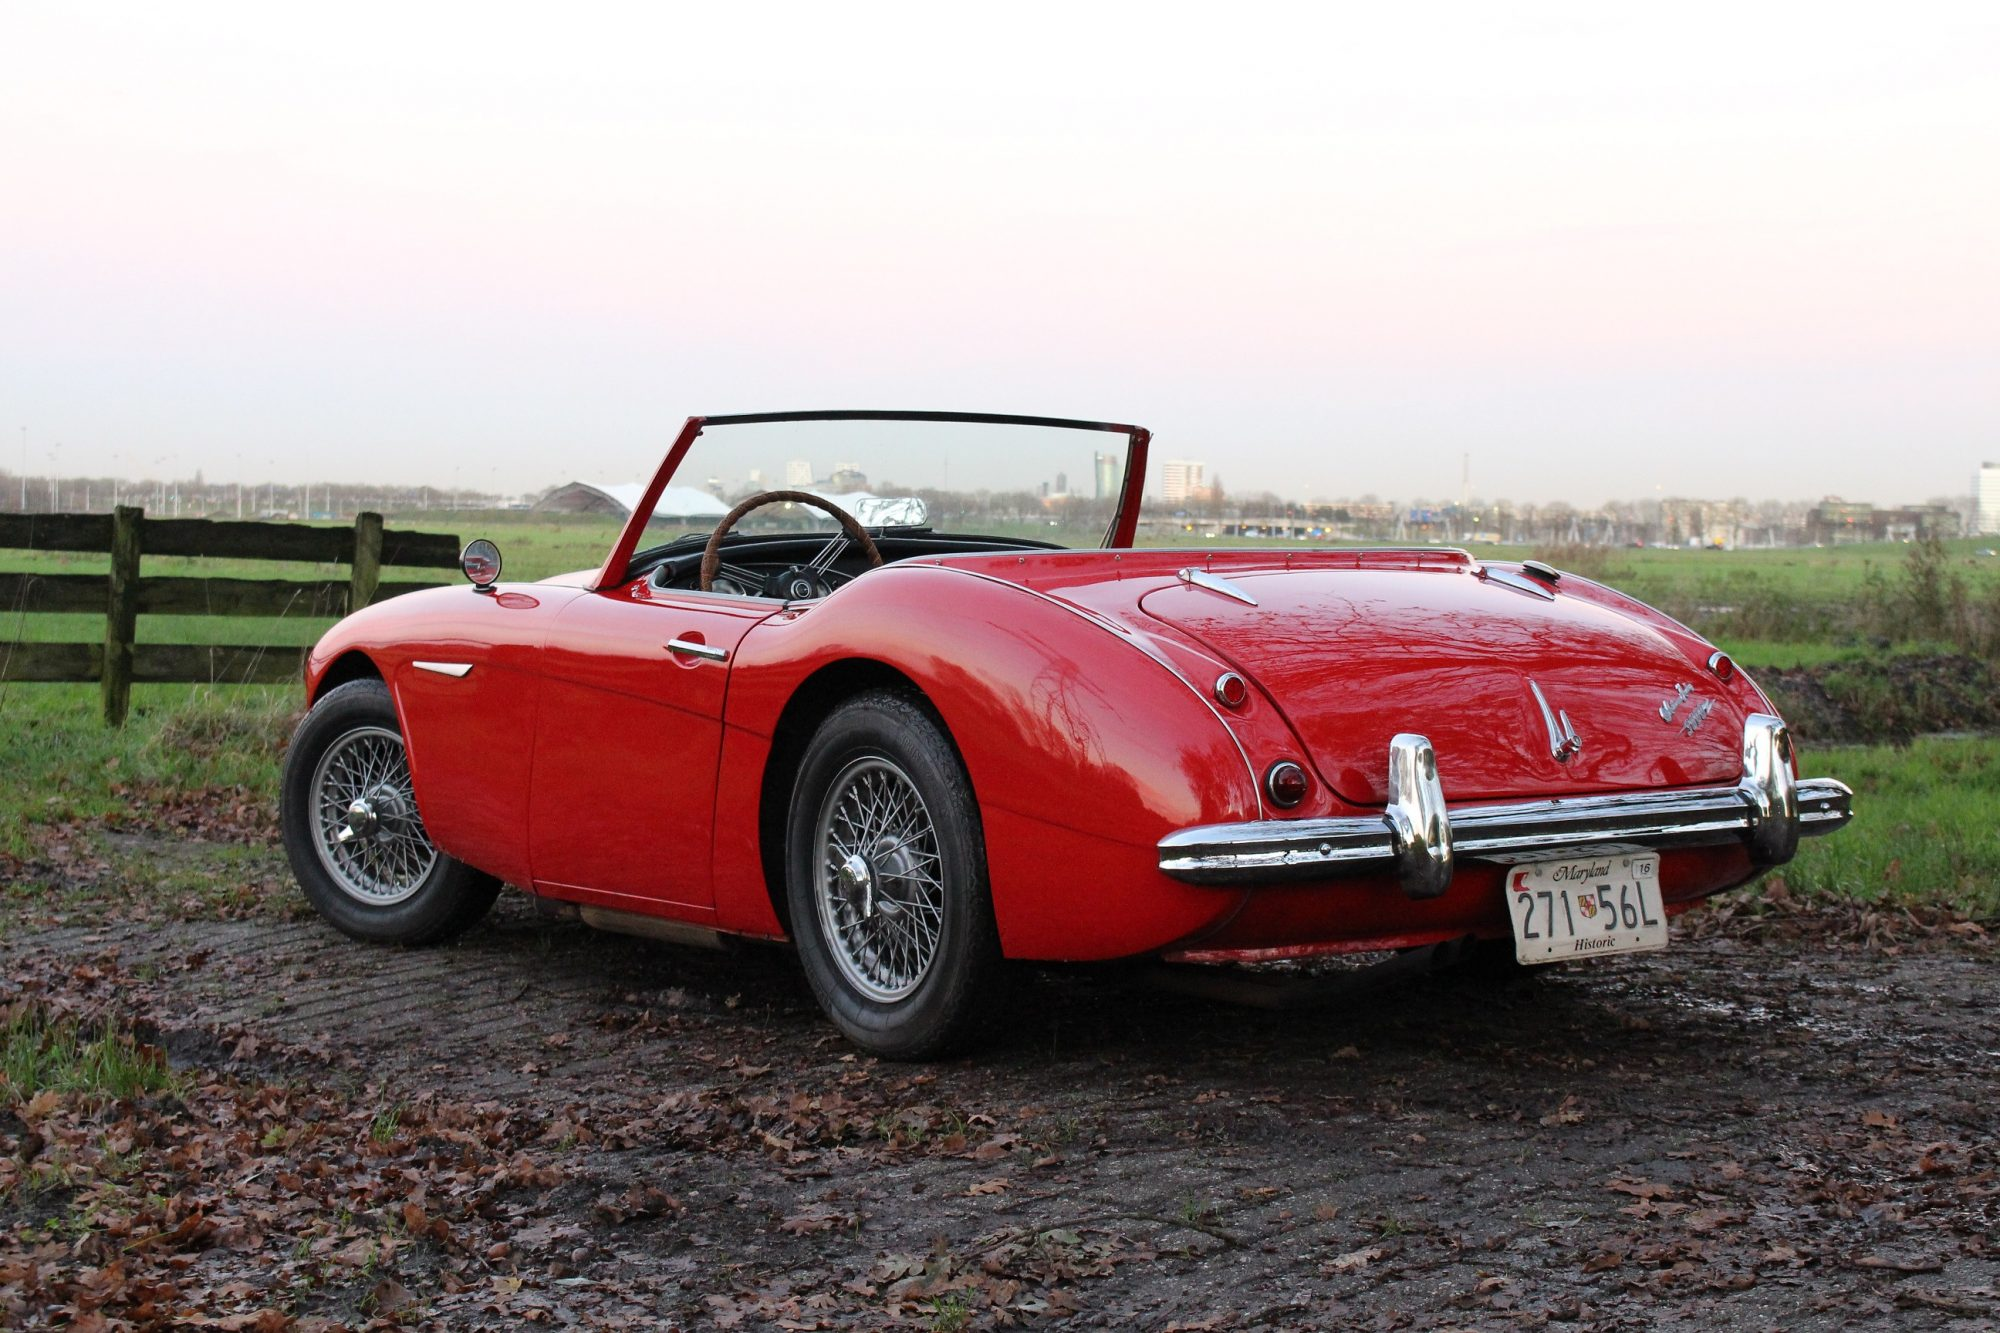 Sport Cars For Sale >> Austin Healey 3000 MKII 1962 - Classic Sports Cars Holland